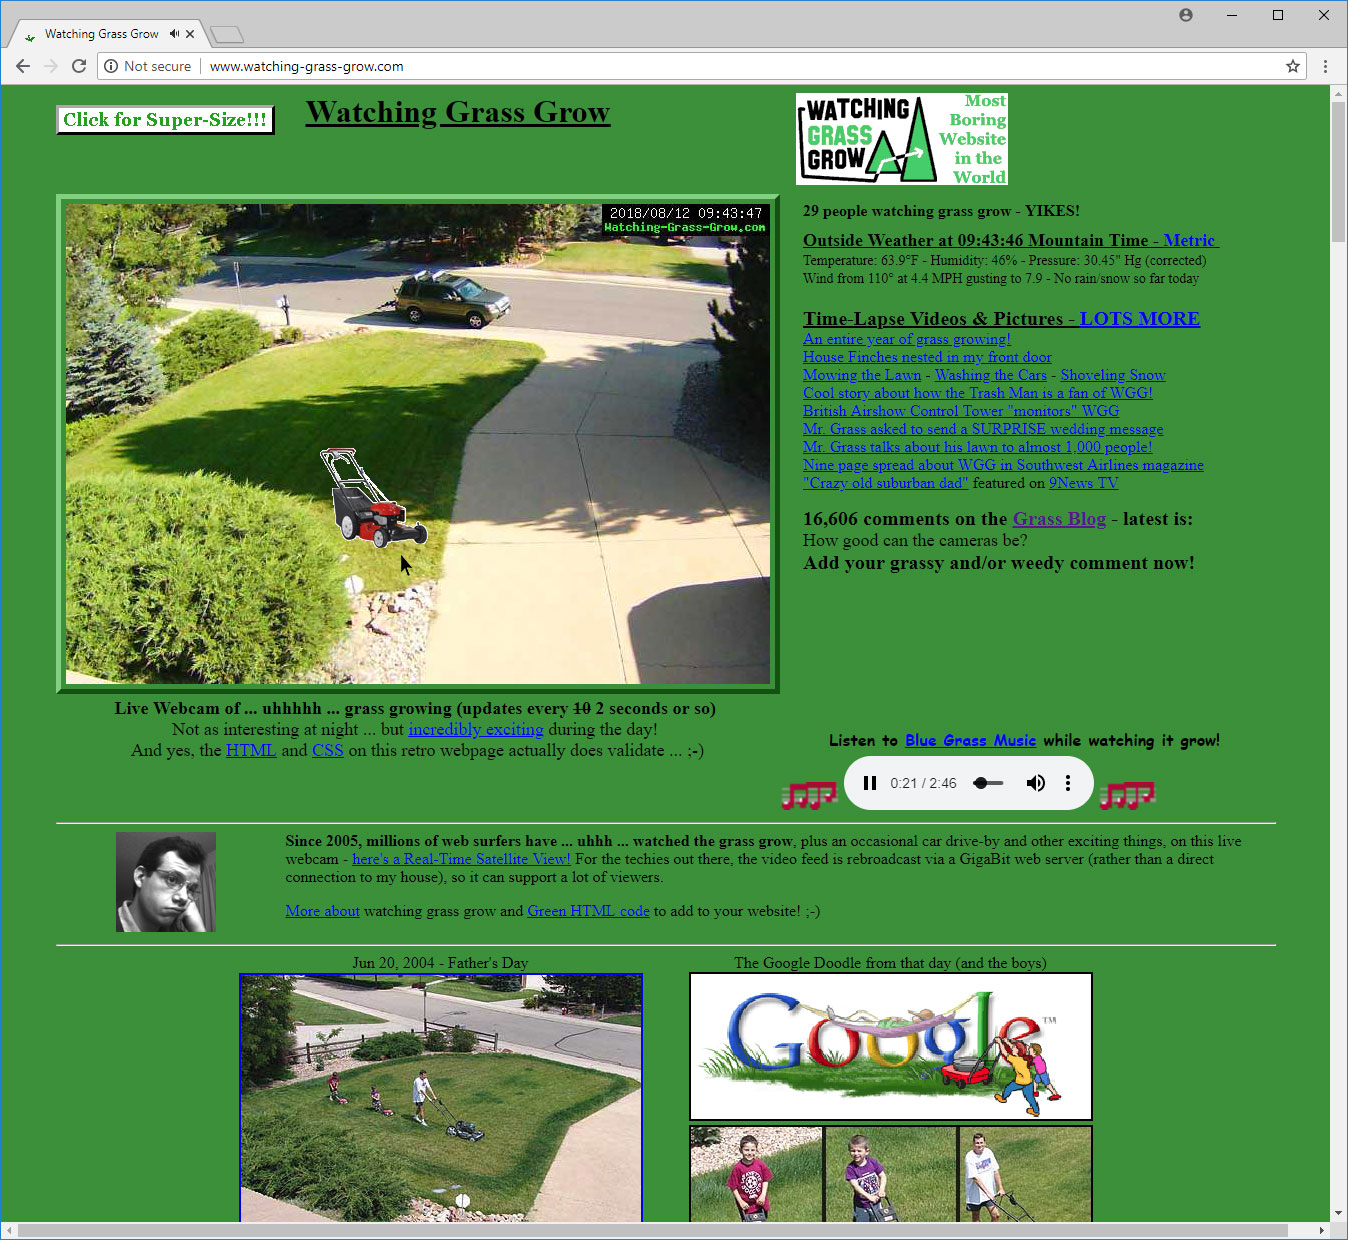 a3d08a96c1fa8 I just switched the main WGG webpage to a new layout that provides a bigger  image of the front lawn in preparation for bringing the Hi-Def camera  online ...